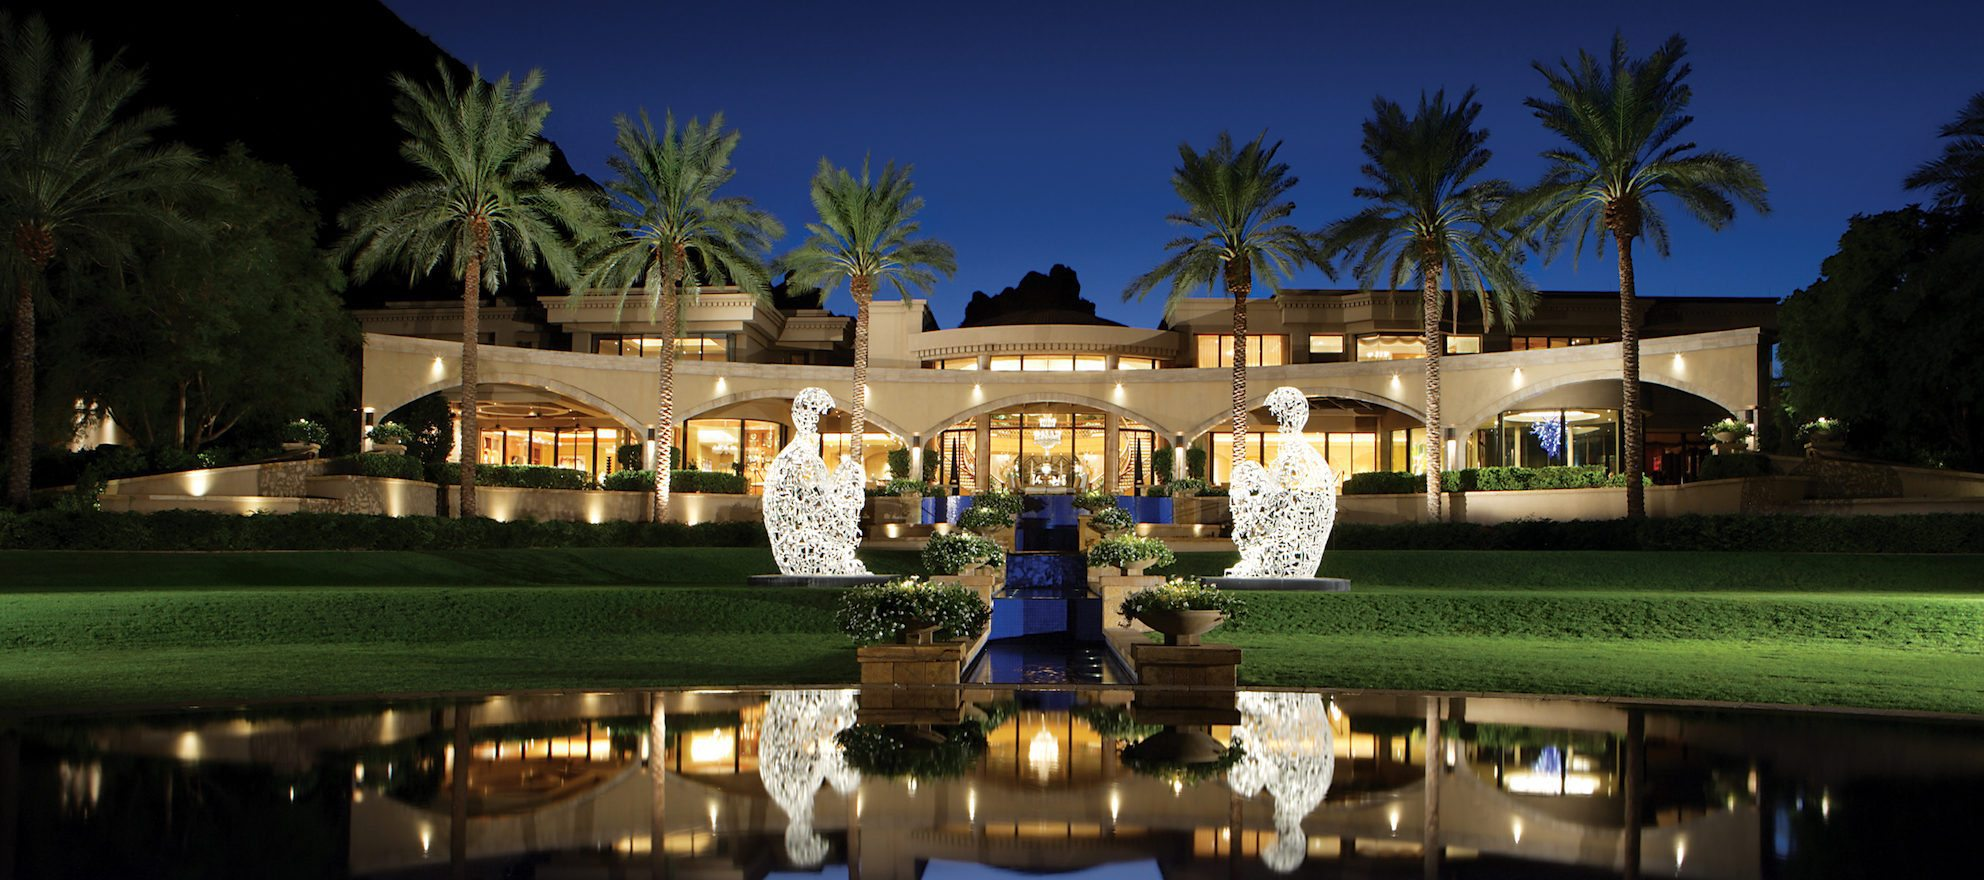 Luxury listing of the day: Villa Paradiso in Arizona